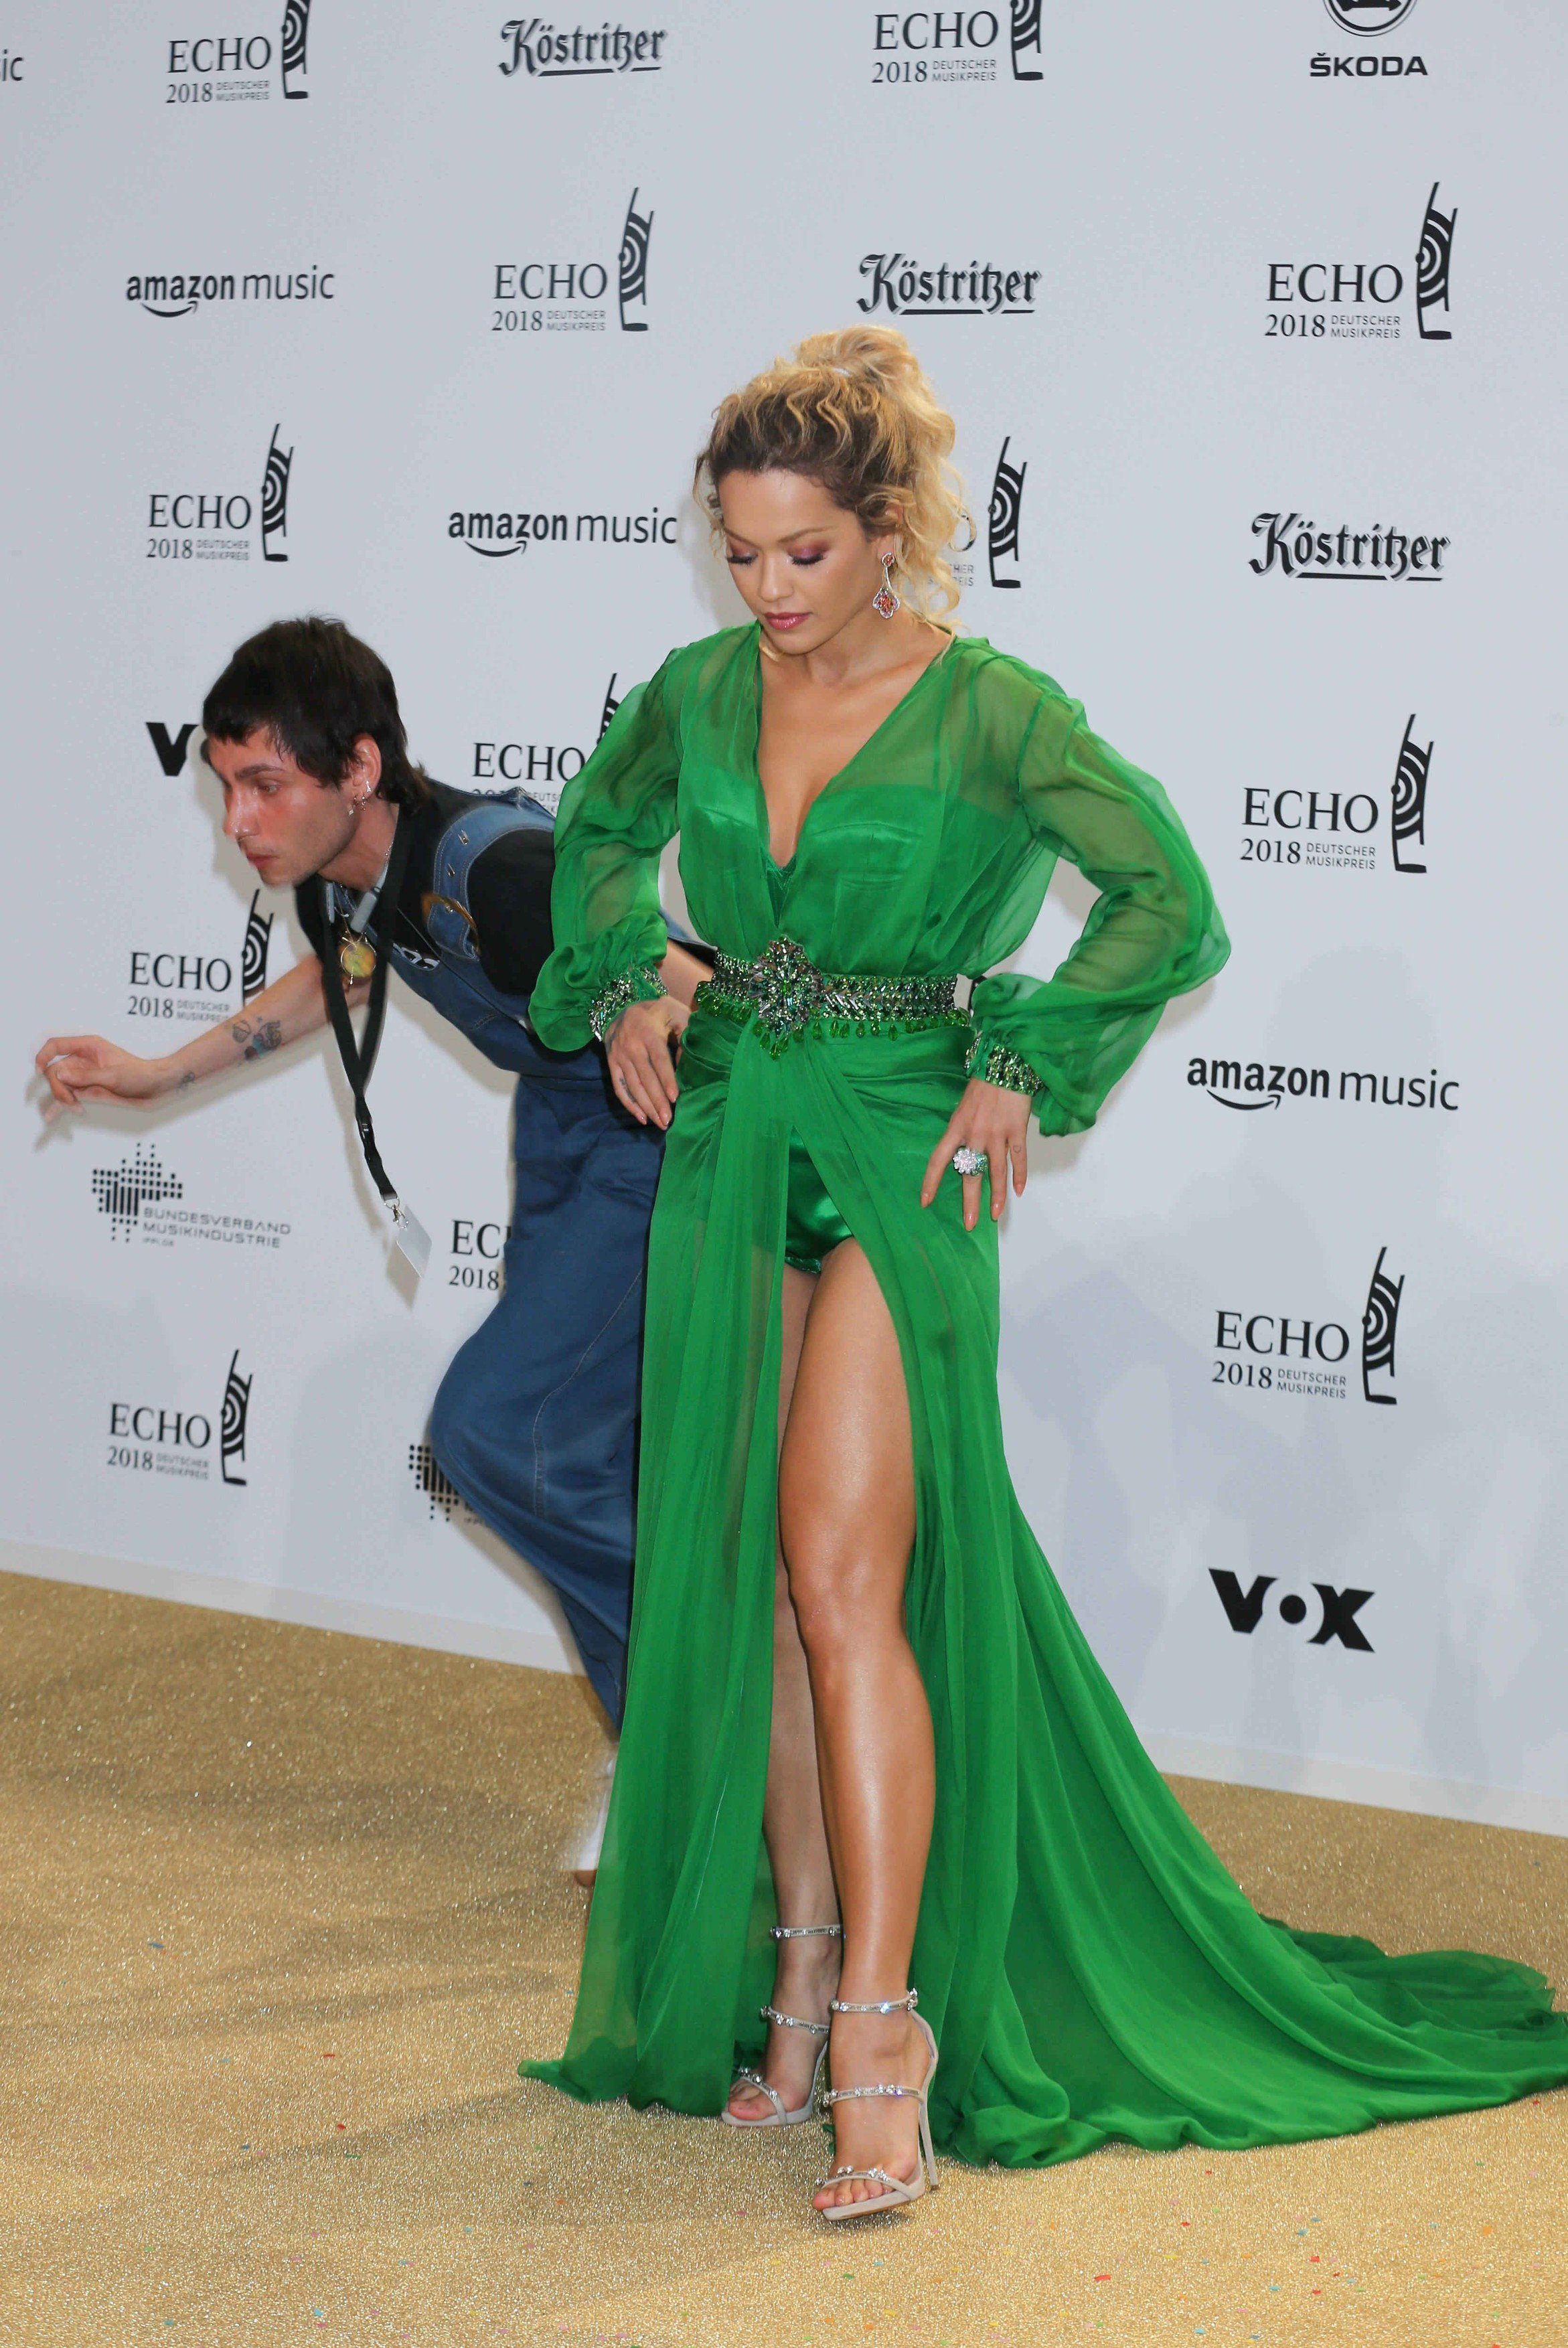 Rita Ora Echo Music Awards 2018 at the Messe Berlin, Arrivals, Berlin, Germany - 12 Apr 2018, Image: 368415991, License: Rights-managed, Restrictions: , Model Release: no, Credit line: Profimedia, TEMP Rex Features